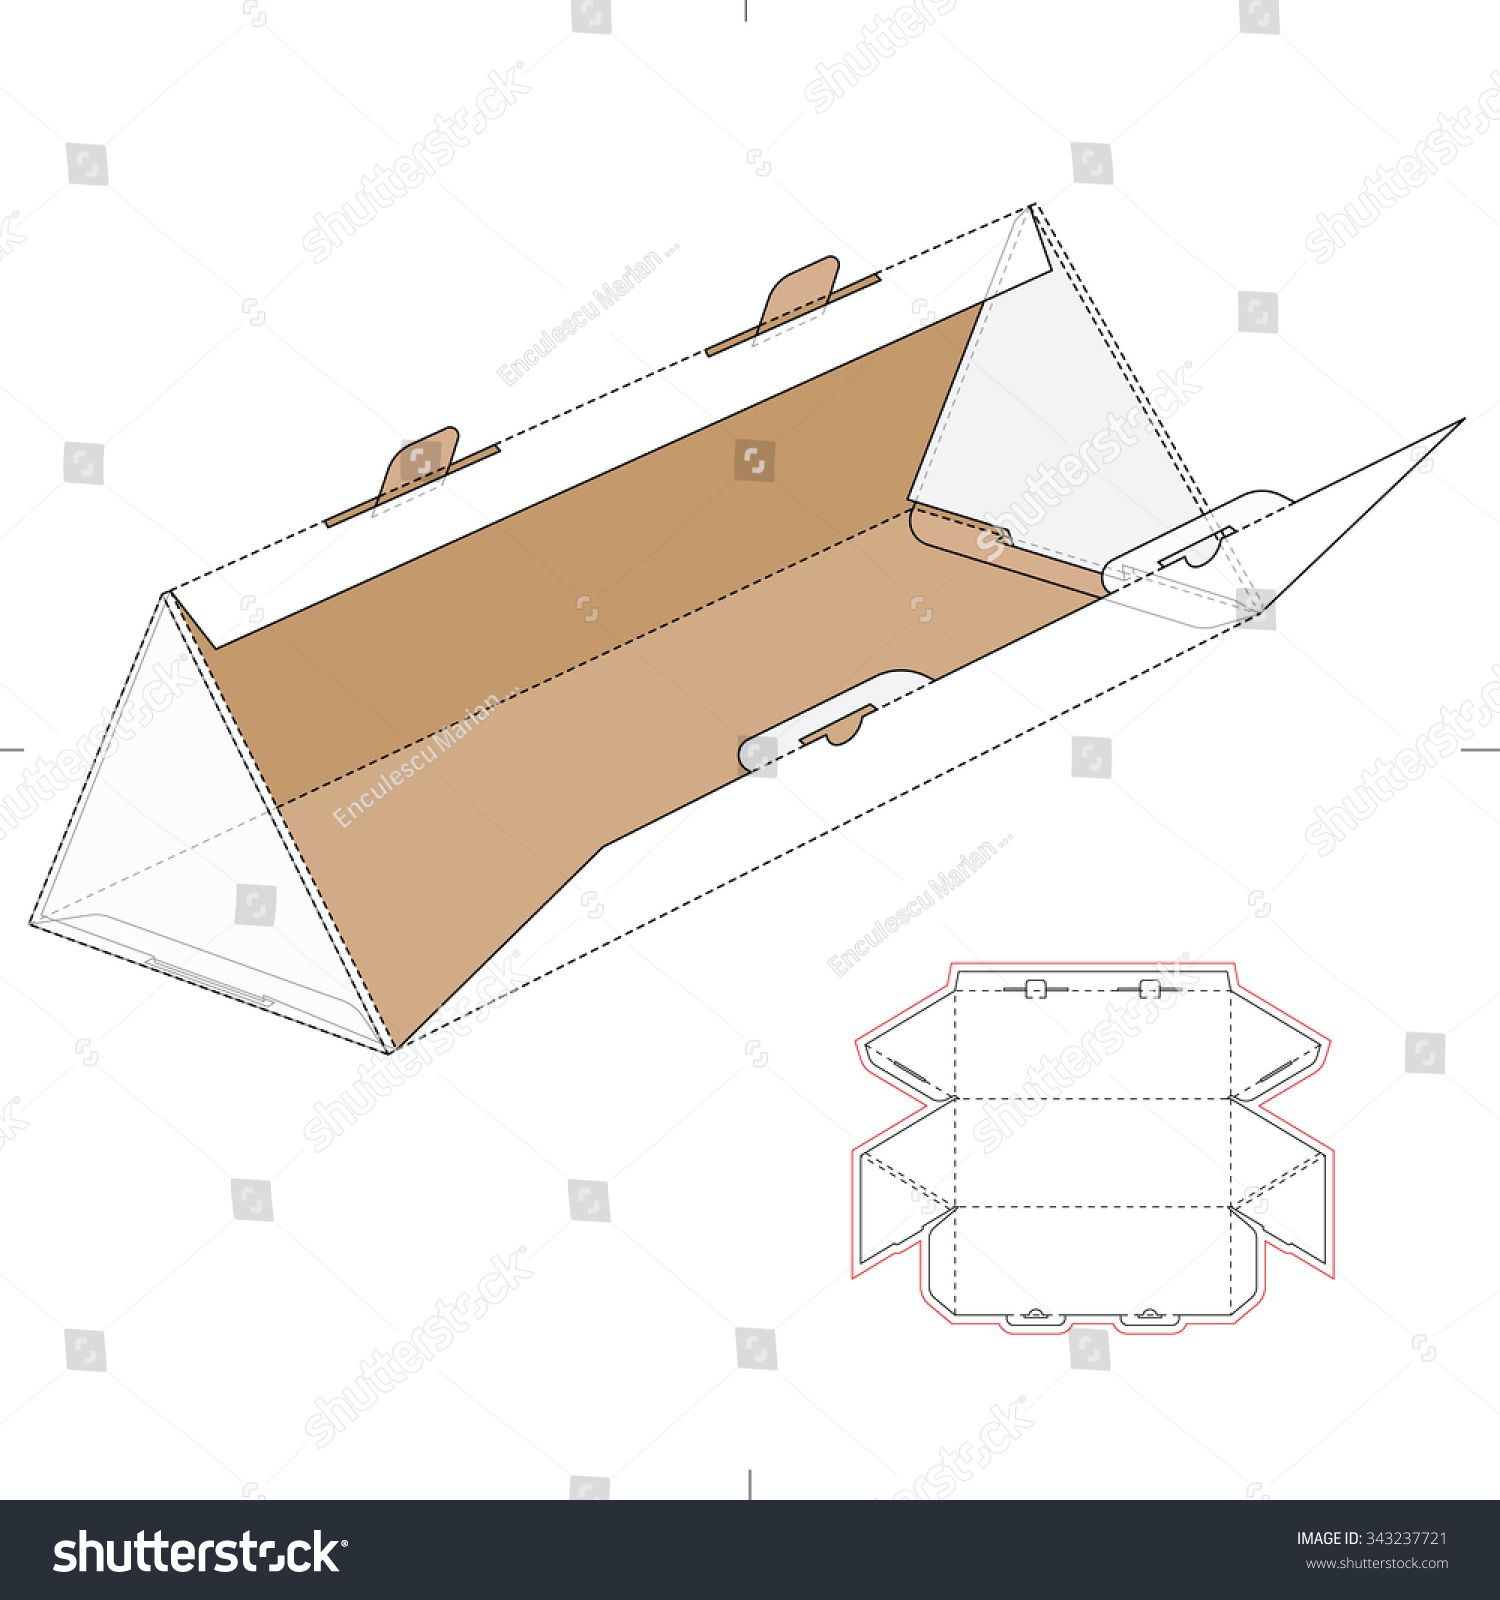 triangular box with die cut template and layout 皮包版型